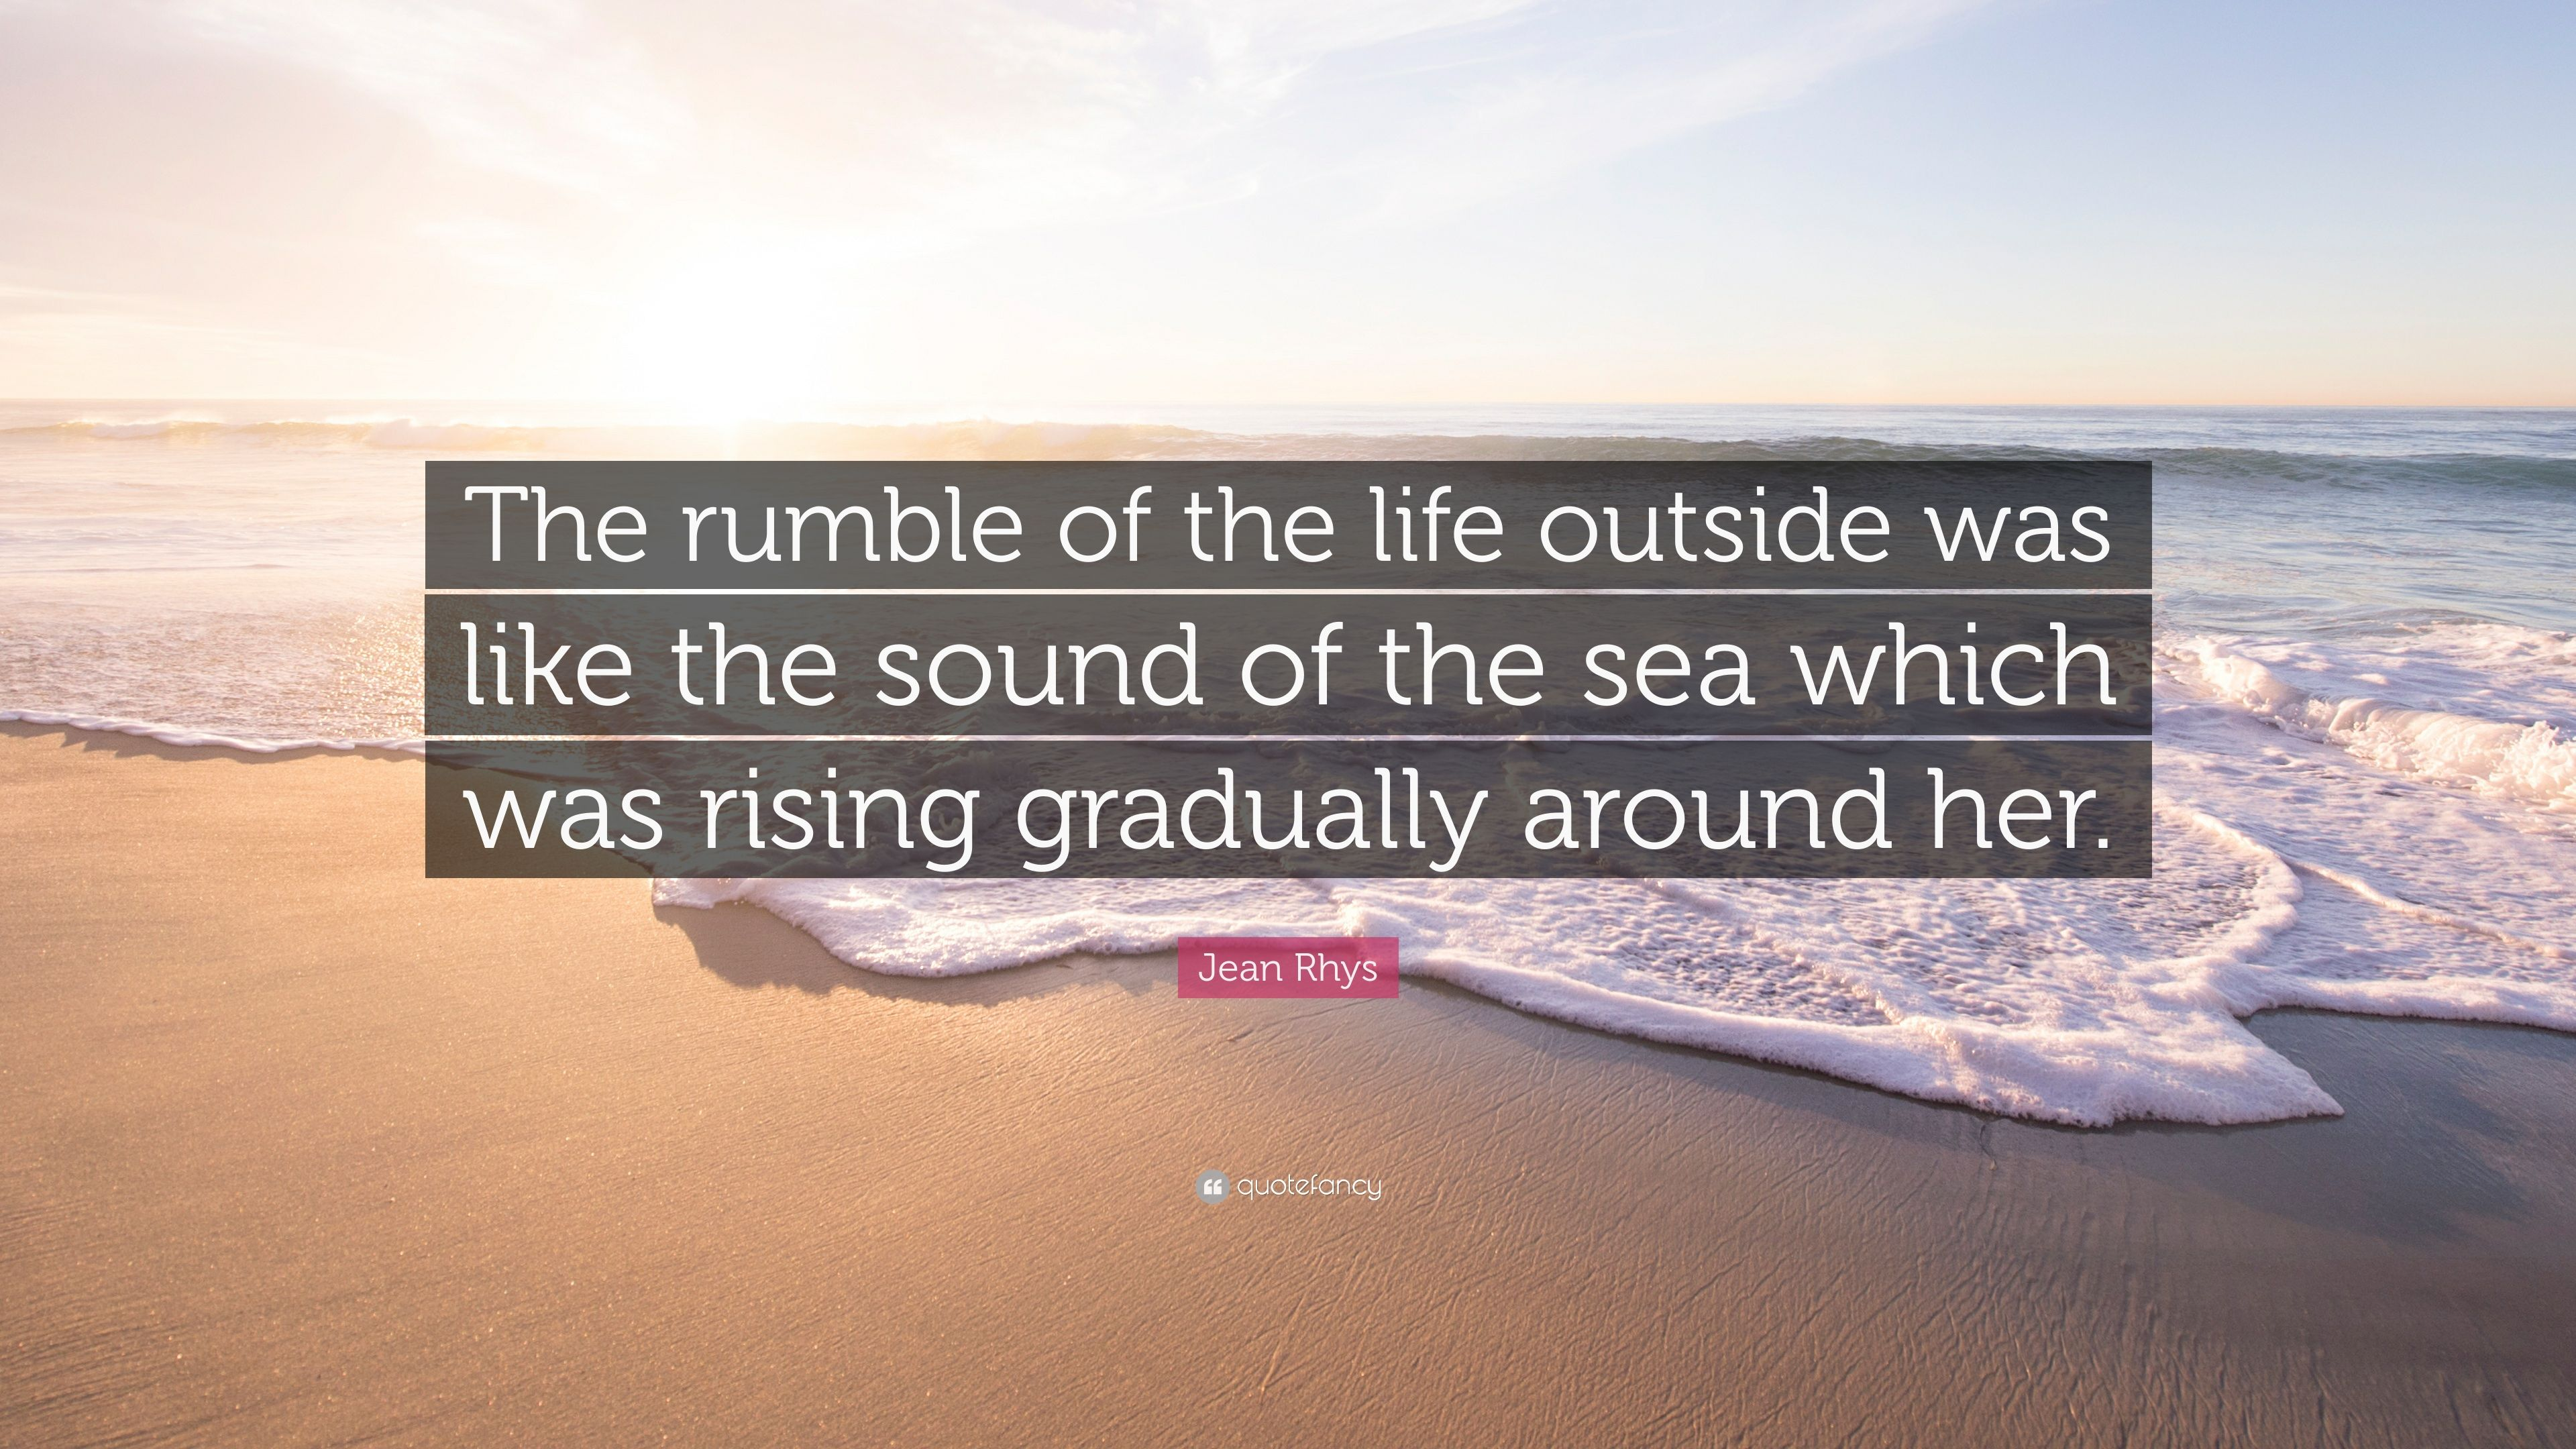 Jean Rhys Quote: U201cThe Rumble Of The Life Outside Was Like The Sound Of